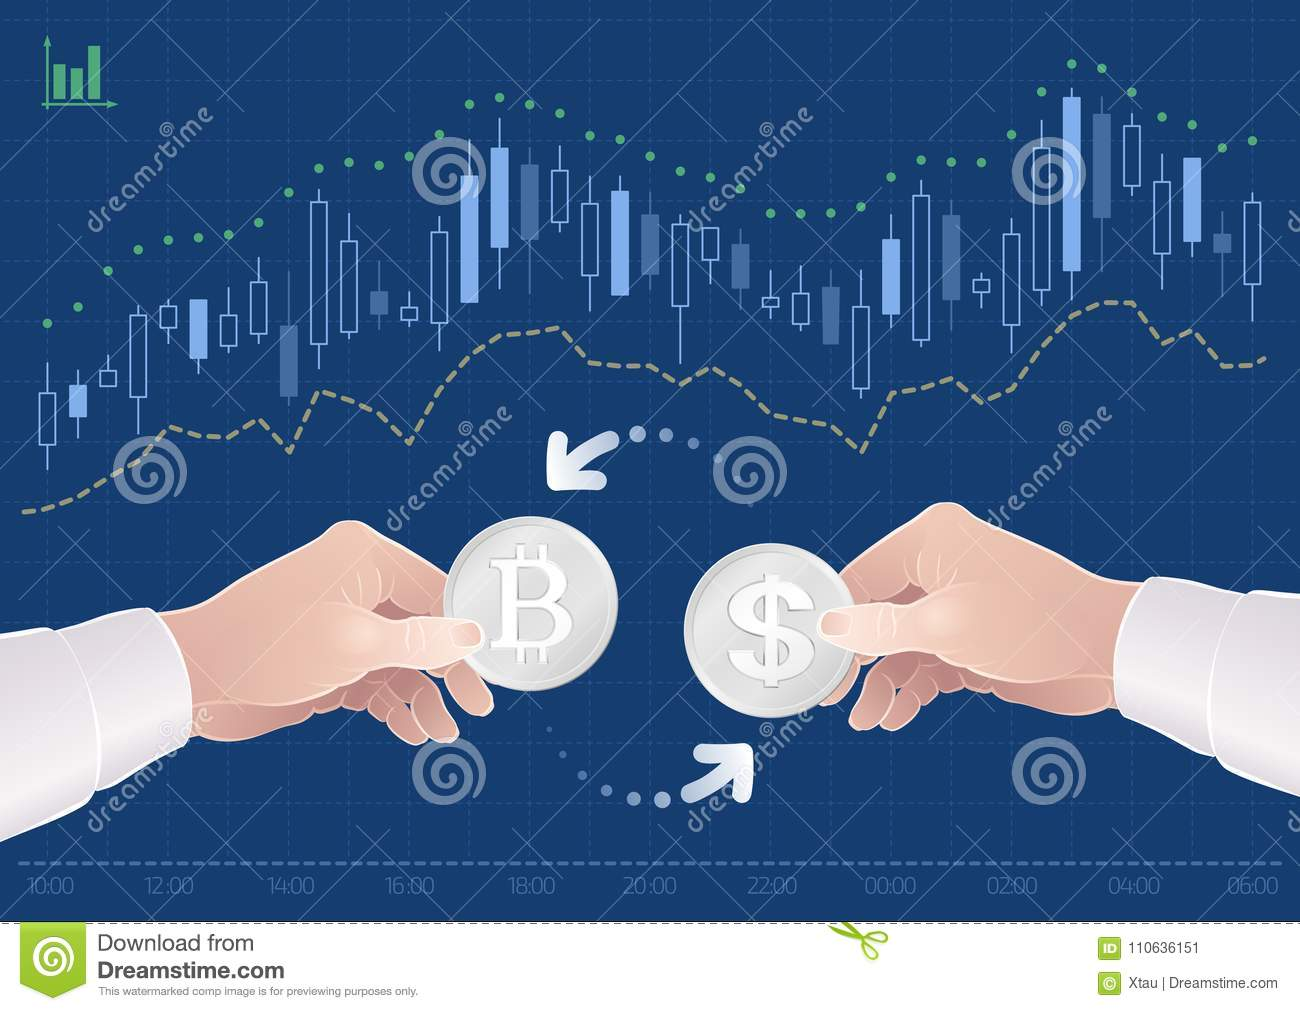 Trading Of Currency Pair Between The Dollar And The Bitcoin On The